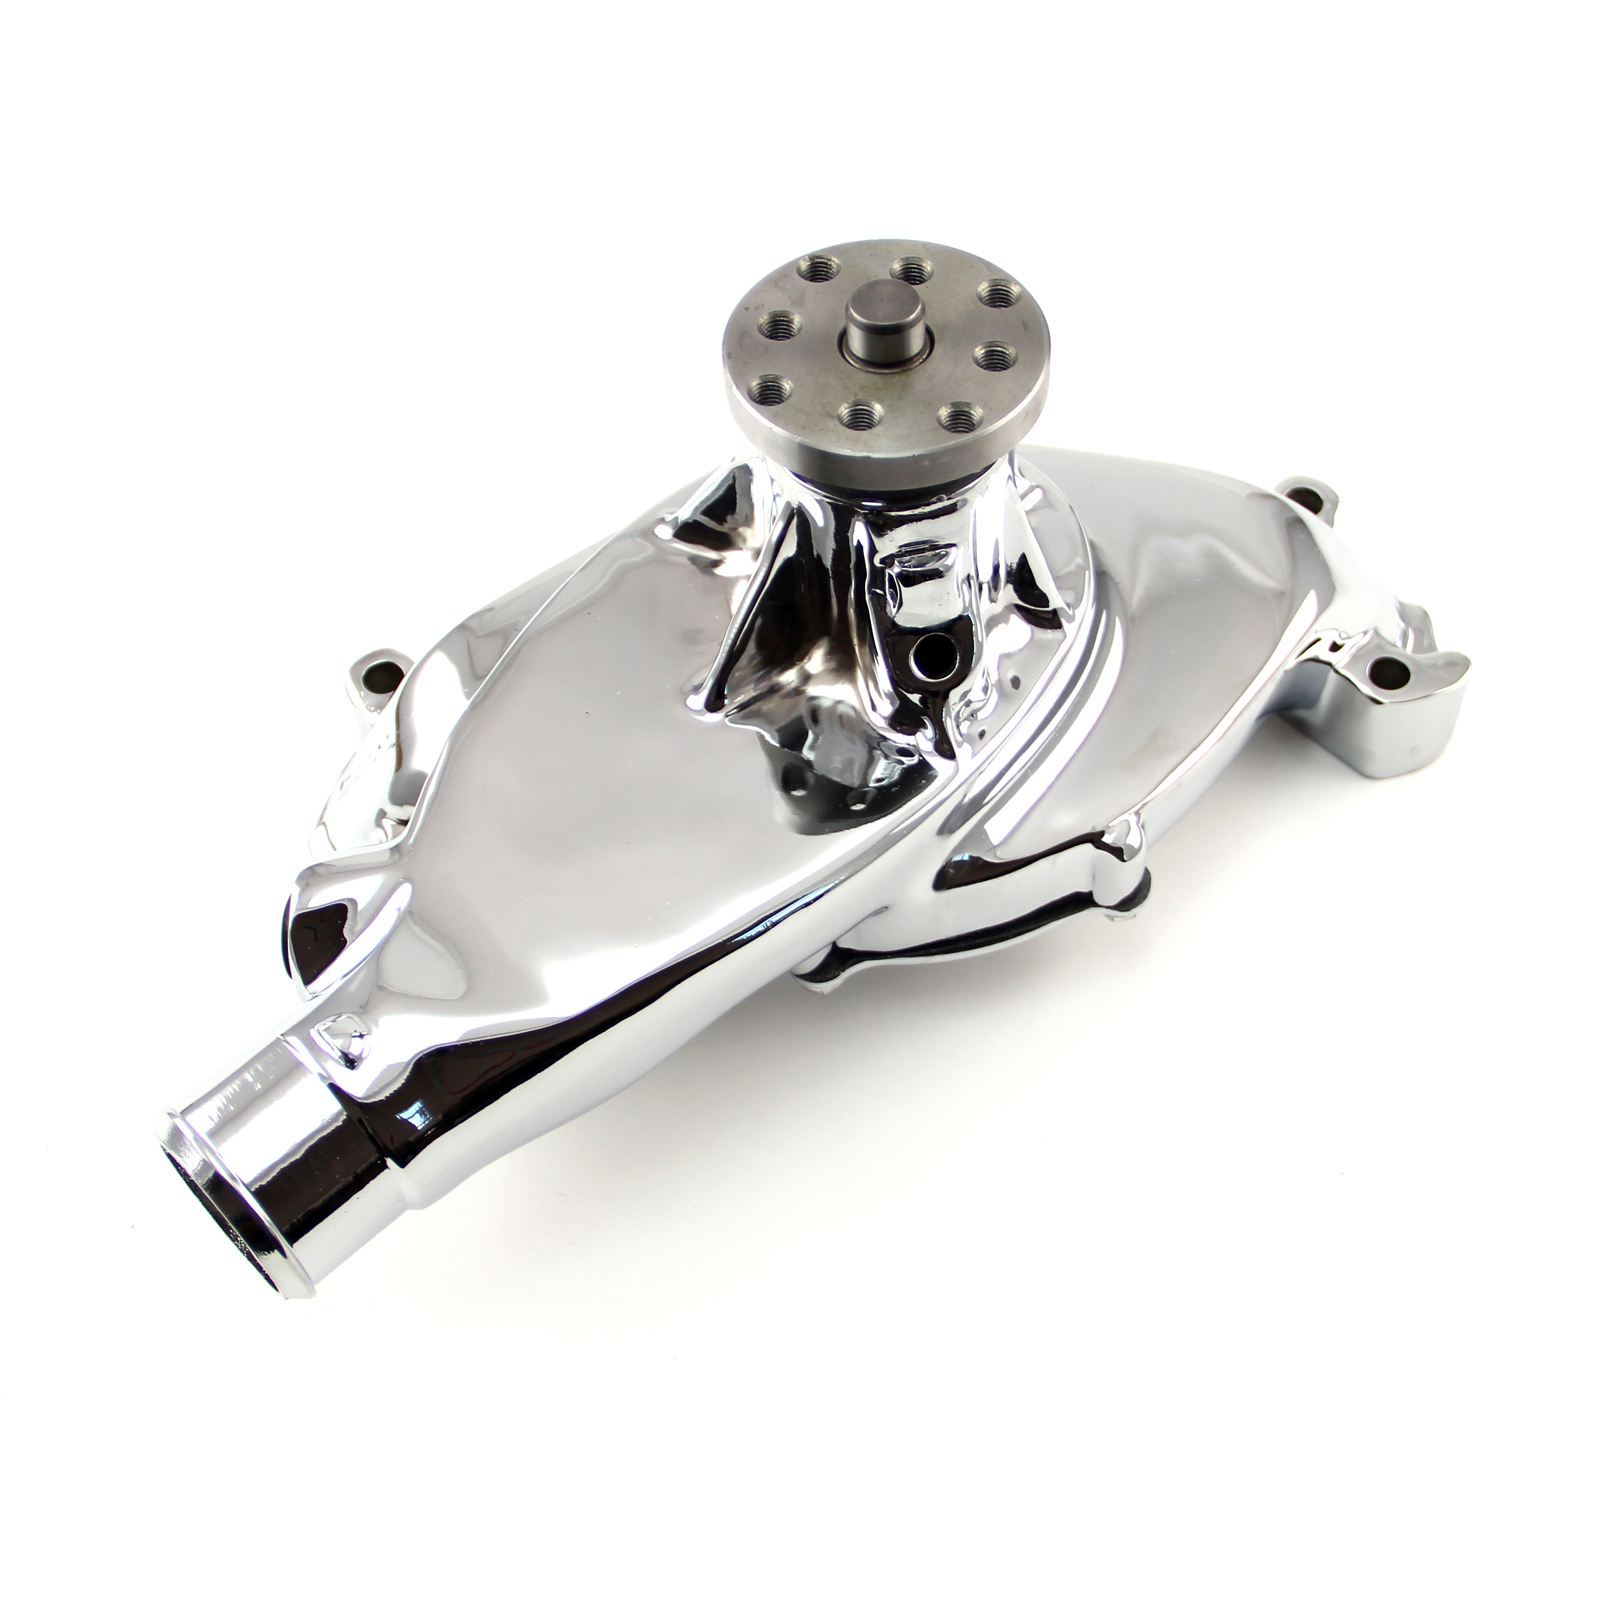 Chevy BBC 454 High Volume Aluminum Short Water Pump Chrome